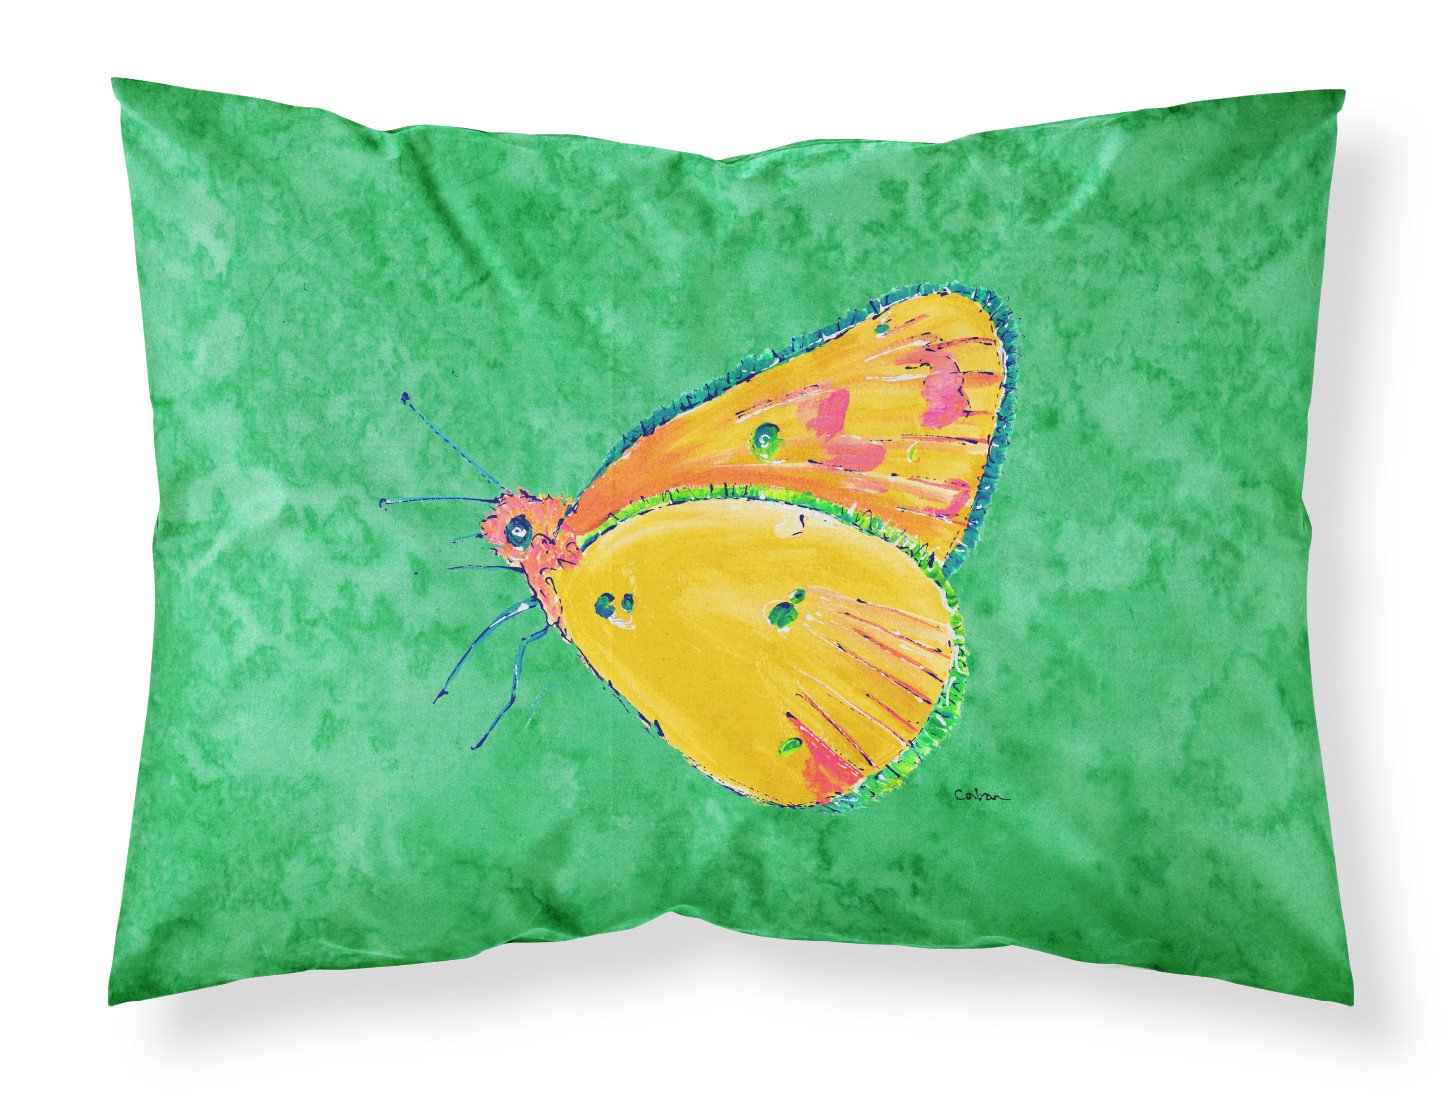 Butterfly Orange on Green Moisture wicking Fabric standard pillowcase by Caroline's Treasures